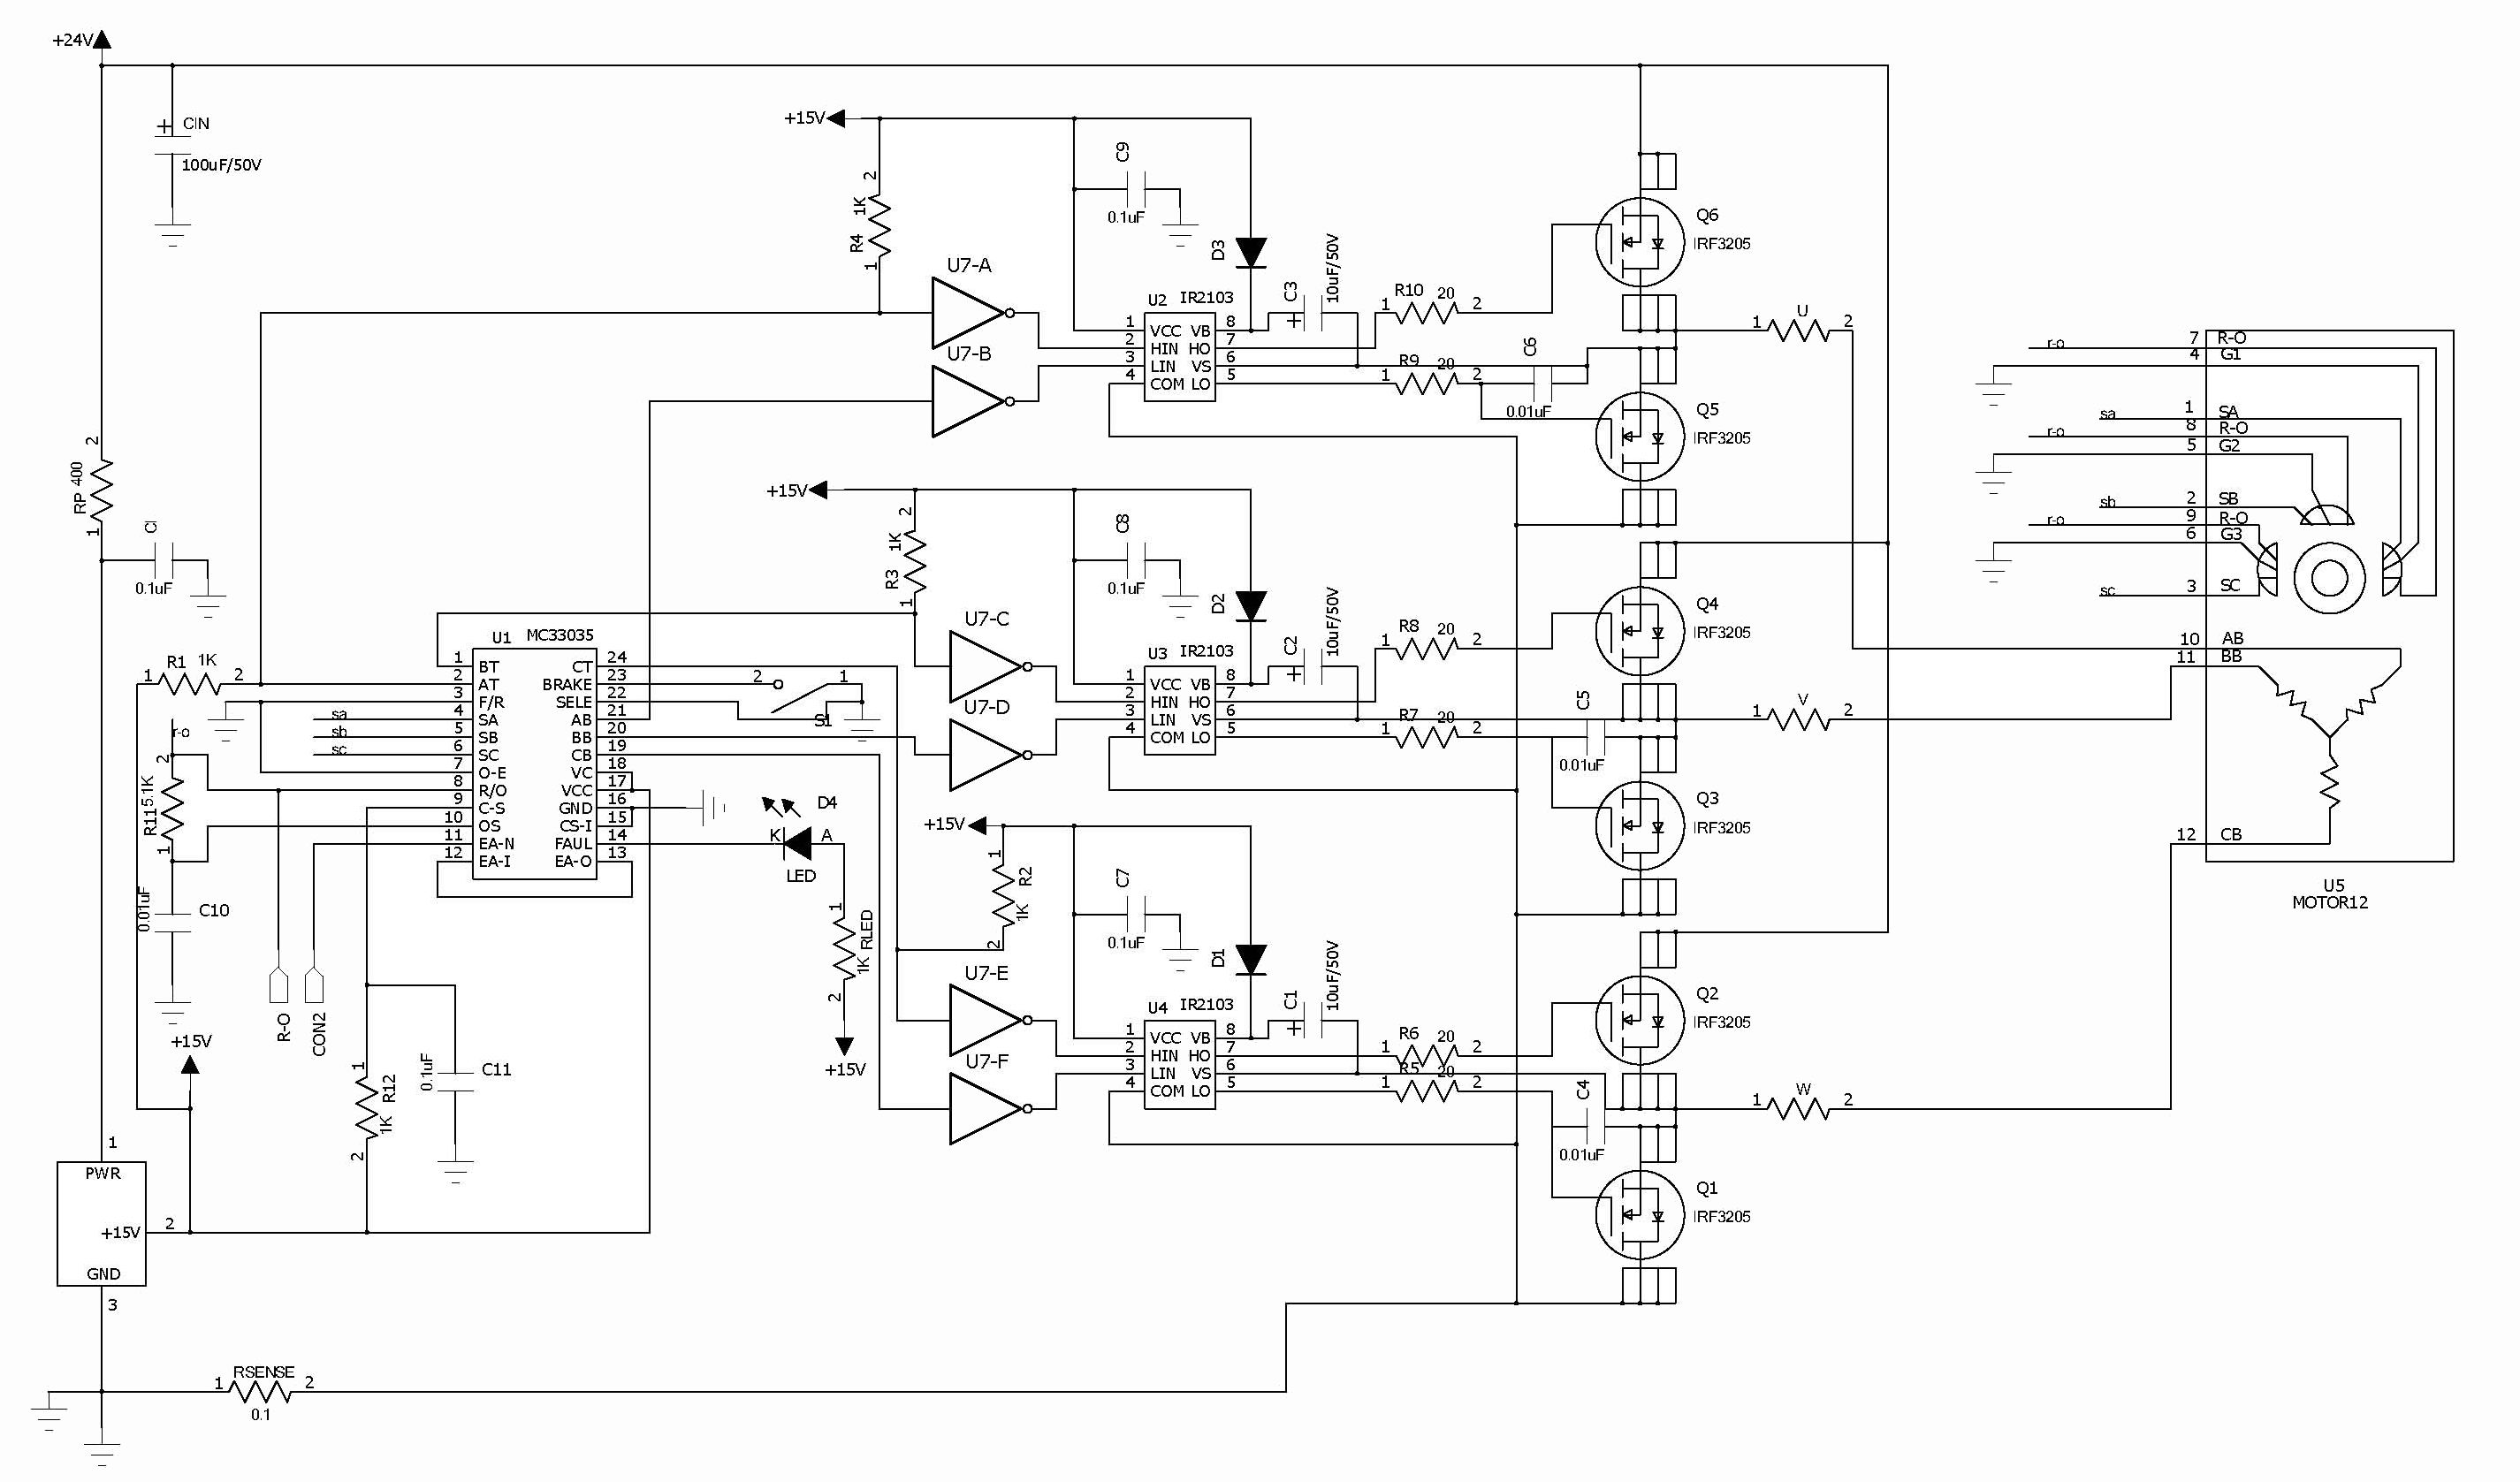 Electronica Projects Dc Motor Controller Diagram Image Fully Accessible Error Amplifier For Closed Loop Servo Applications High Current Drivers Can Control External 3phase Mosfet Bridge